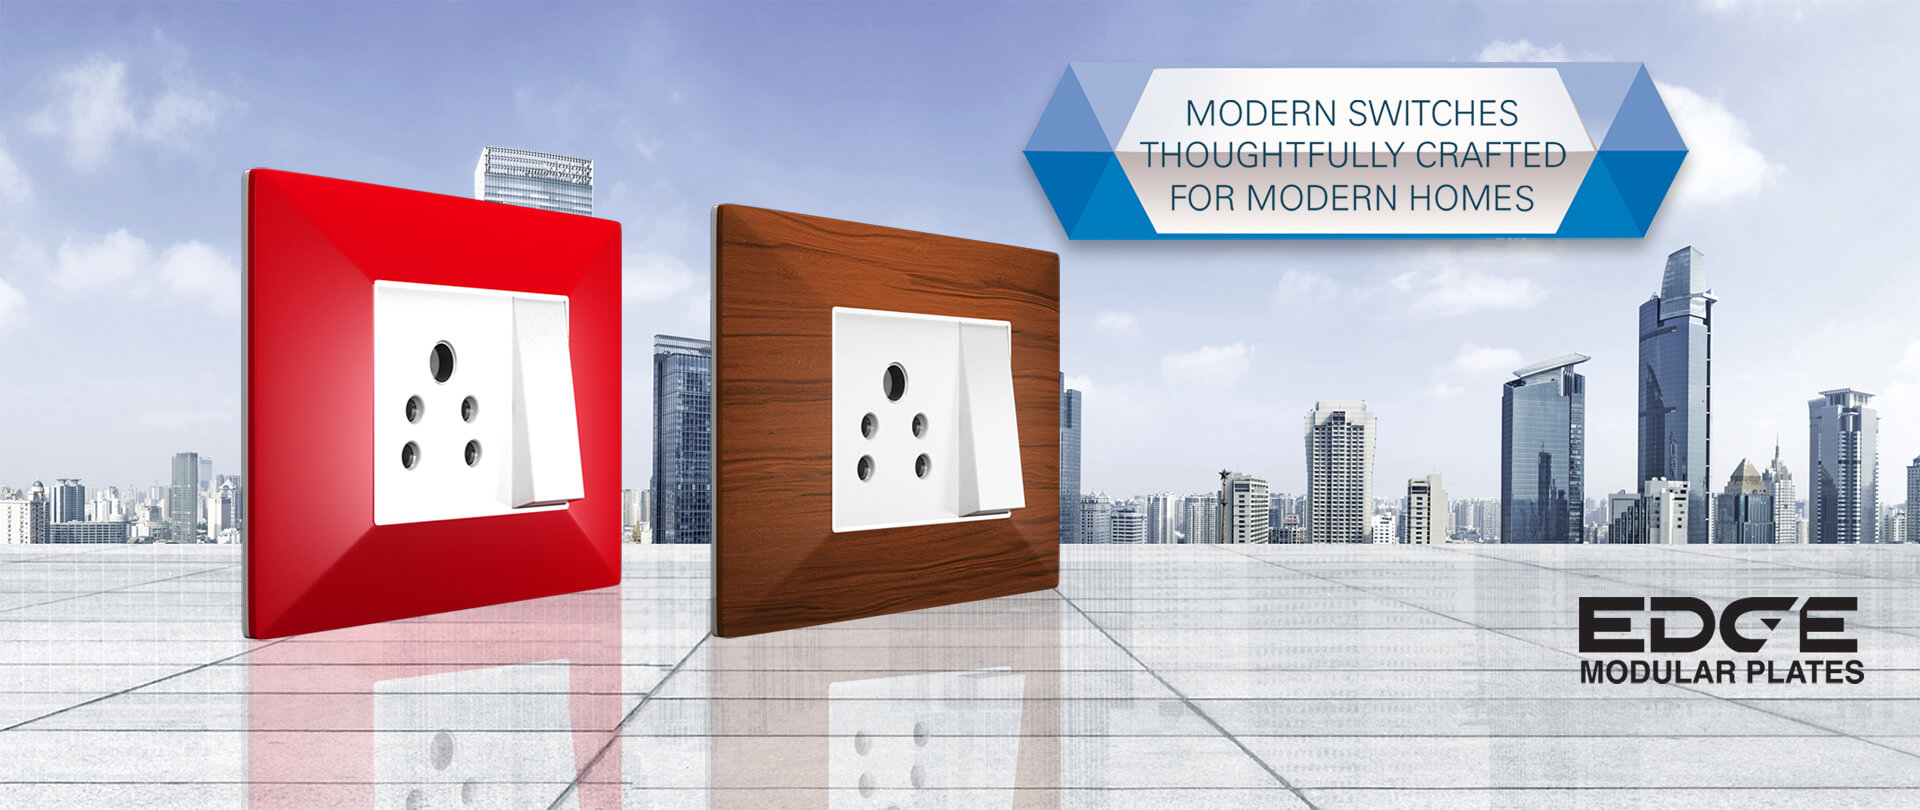 Press Fit Electrical Switches Made For Modern Homes